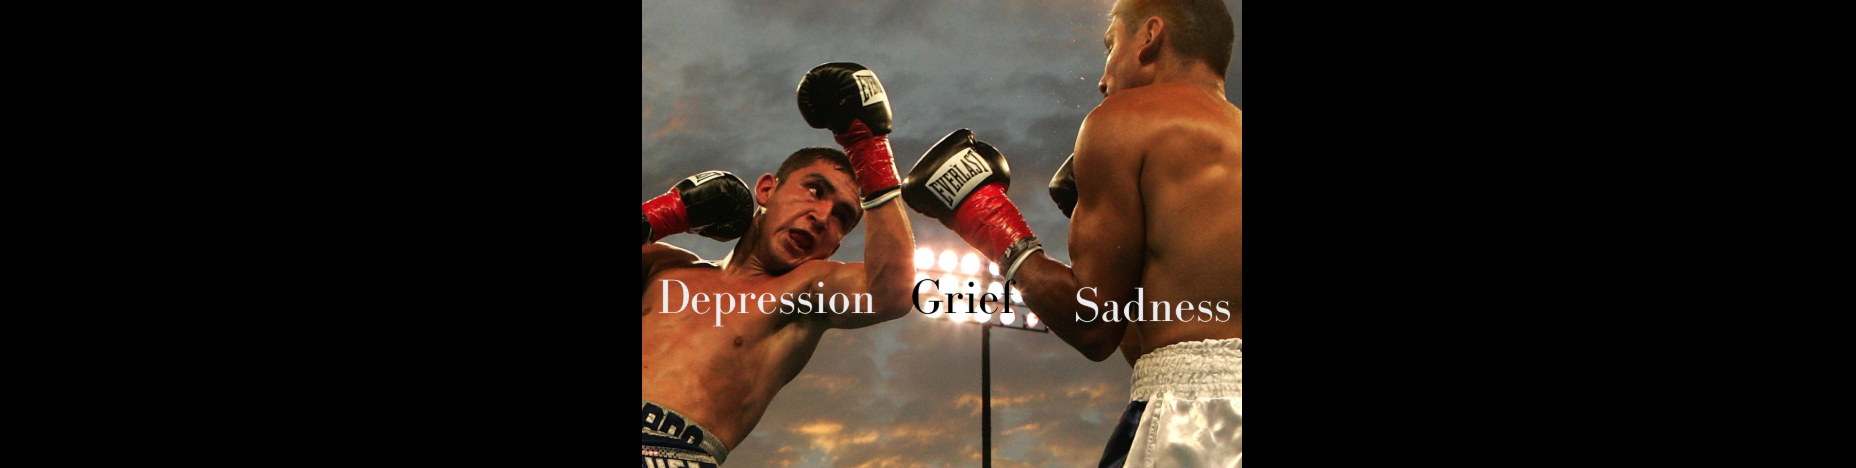 sadness vs grief vs depression